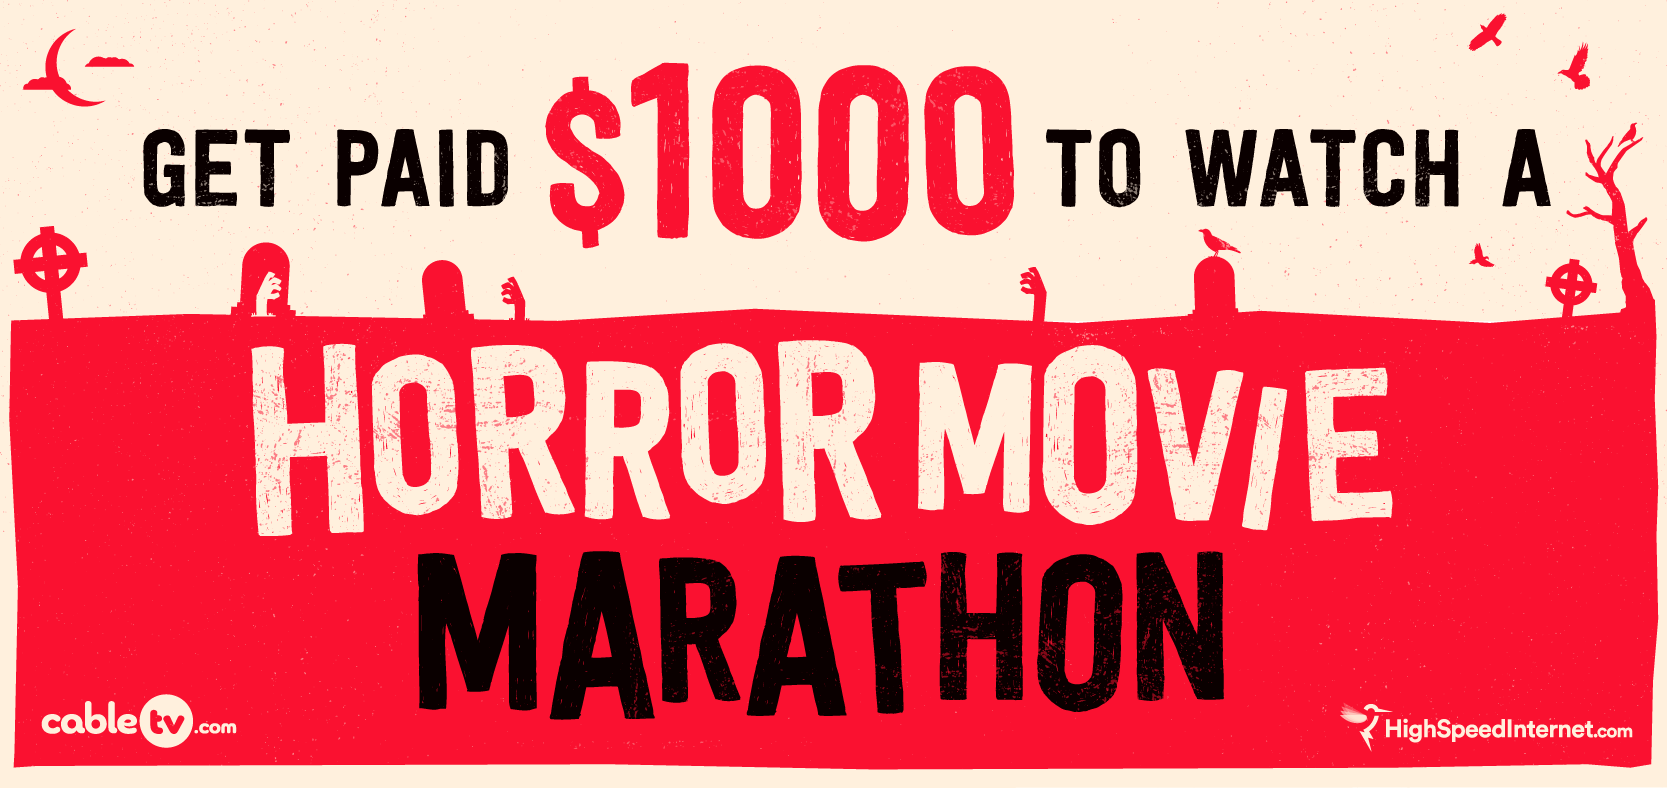 Get paid $1,000 to watch a horror movie marathon this Halloween